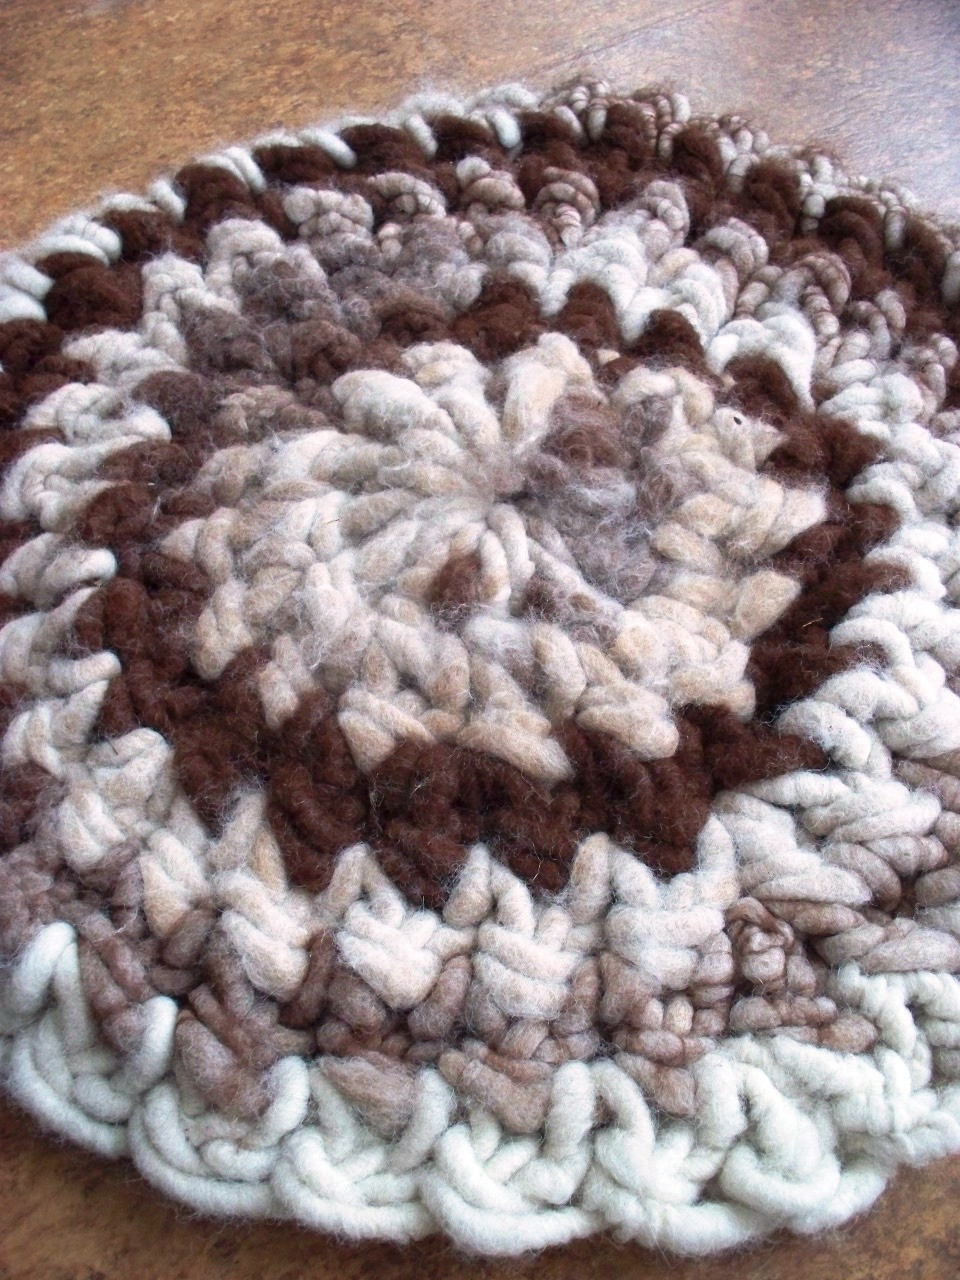 Awesome Crocheted Free Pattern Rug Crochet and Knitting Patterns Free Crochet Rug Patterns Of Delightful 48 Pics Free Crochet Rug Patterns